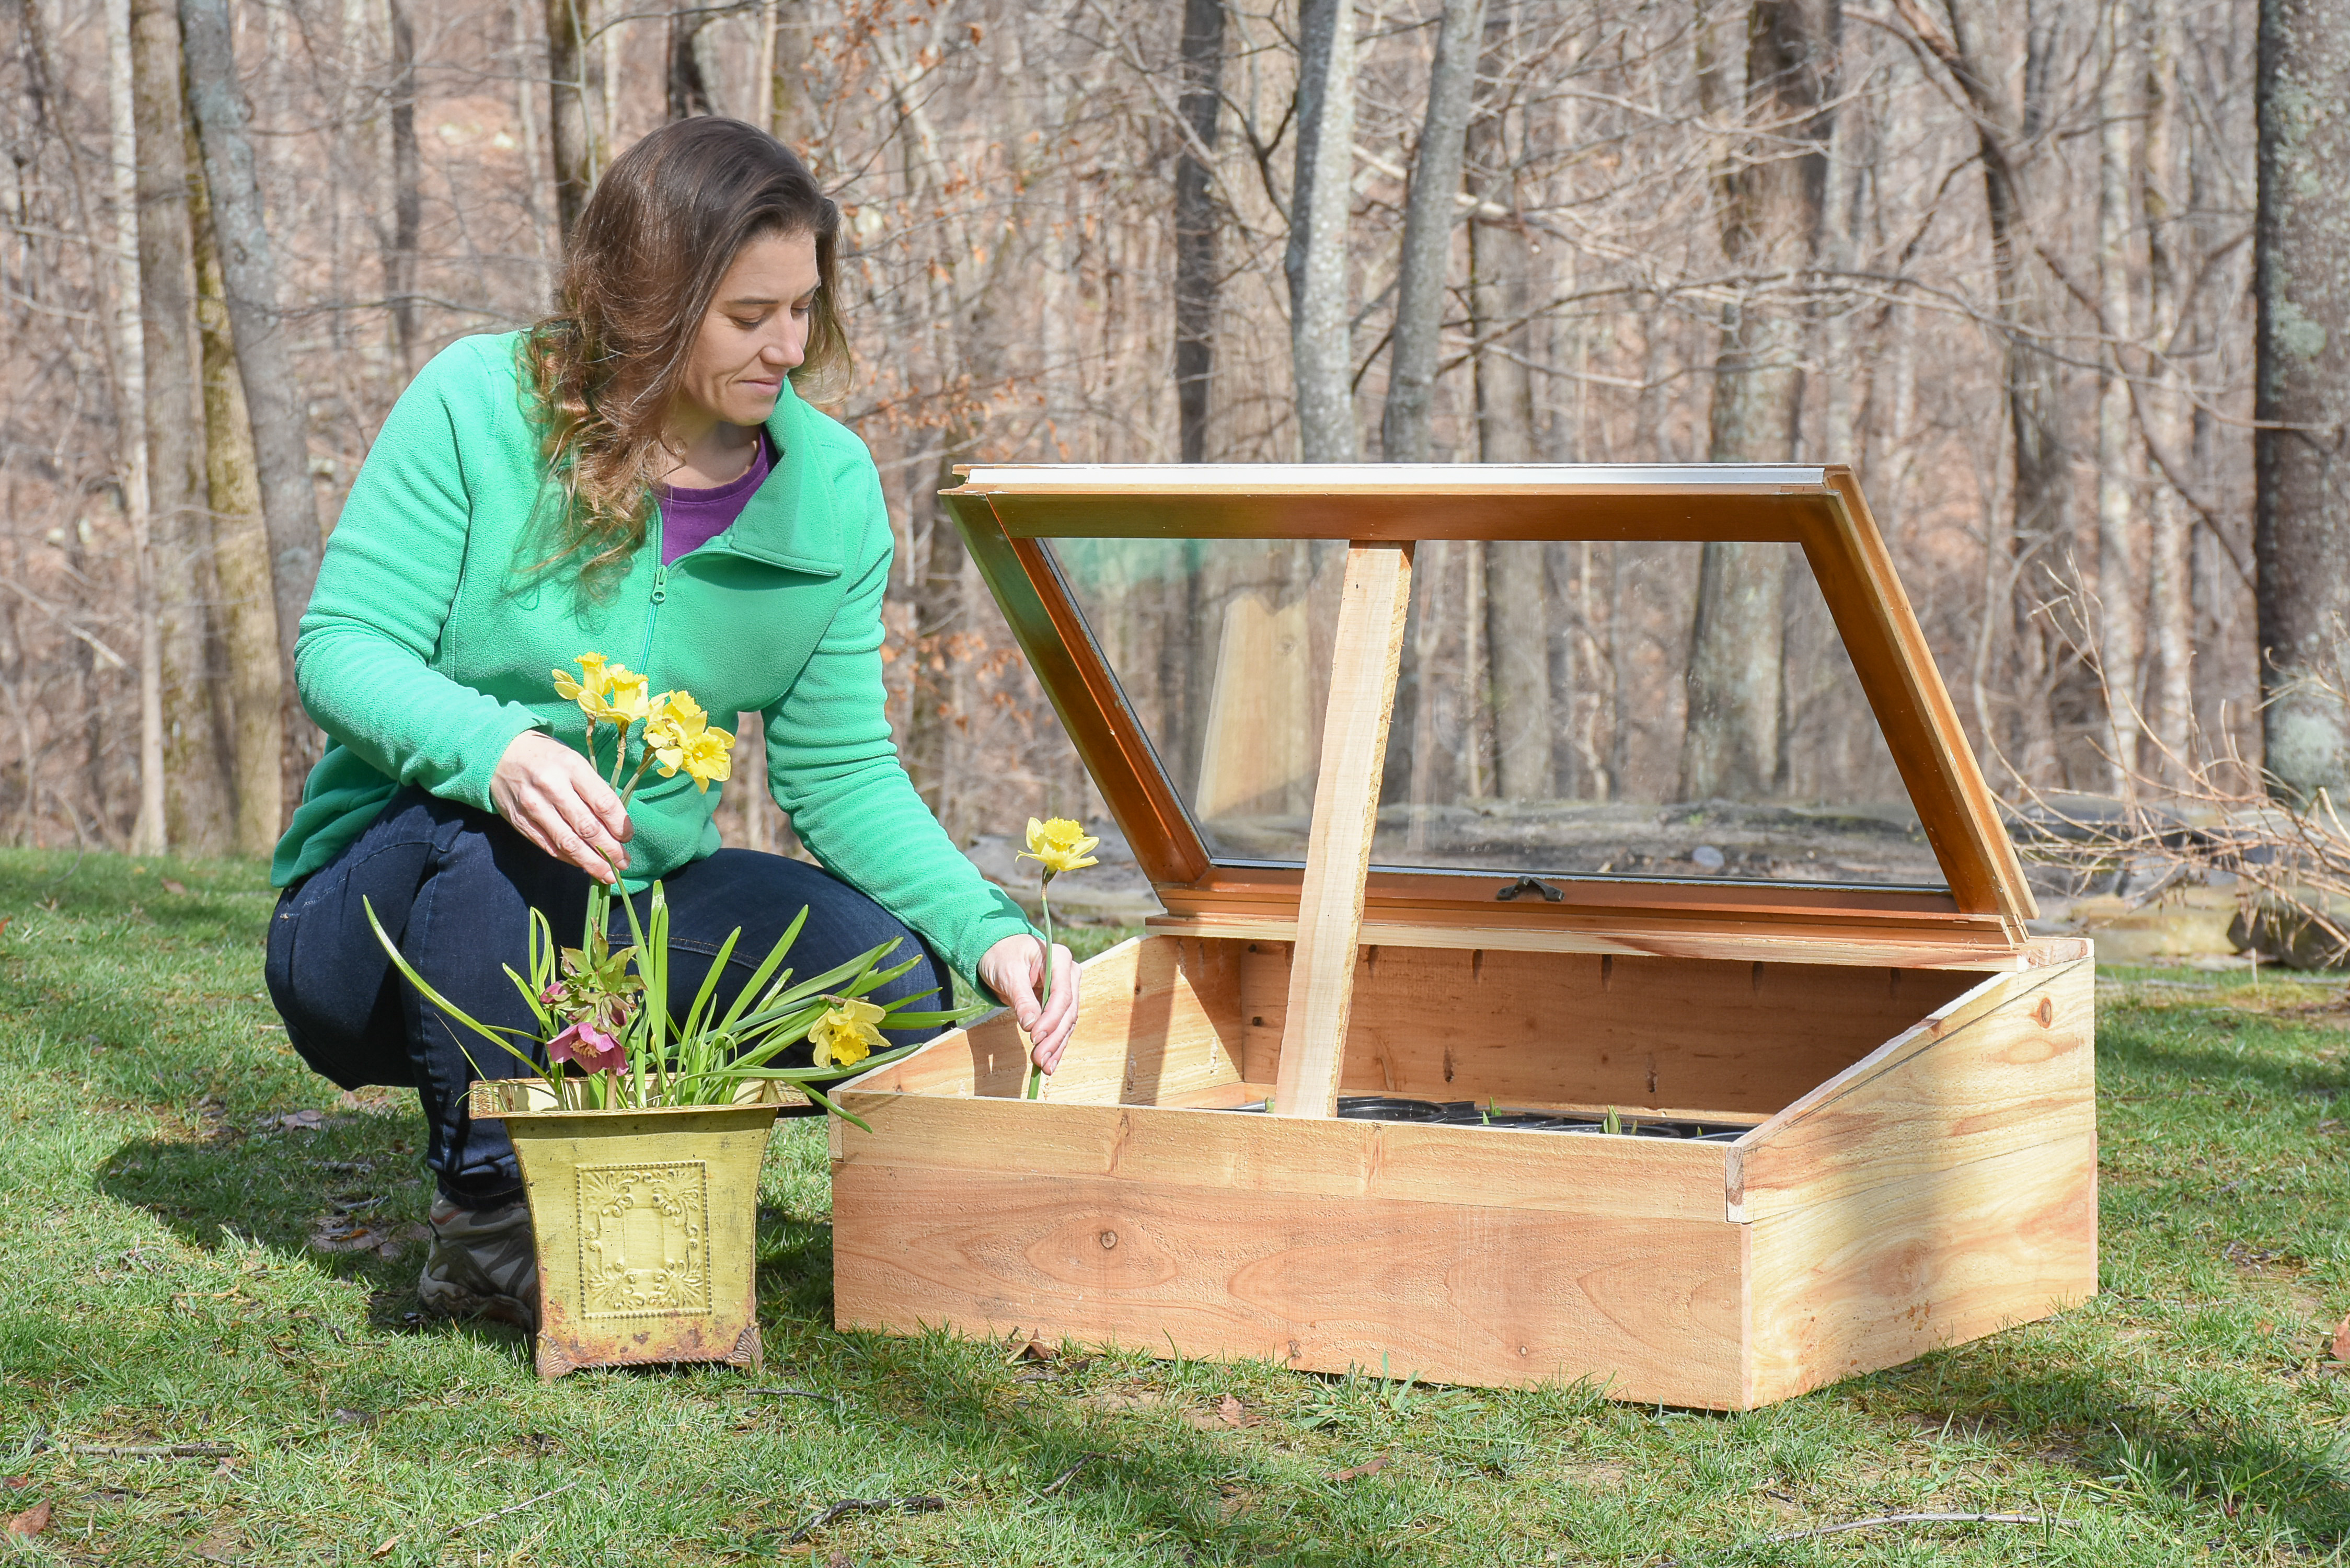 Serina Wells will teach a workshop Sunday, March 3 at 1:00 PM. Visitors will learn to build a quick, easy and low-cost portable cold frame to start plants early for the spring growing season.